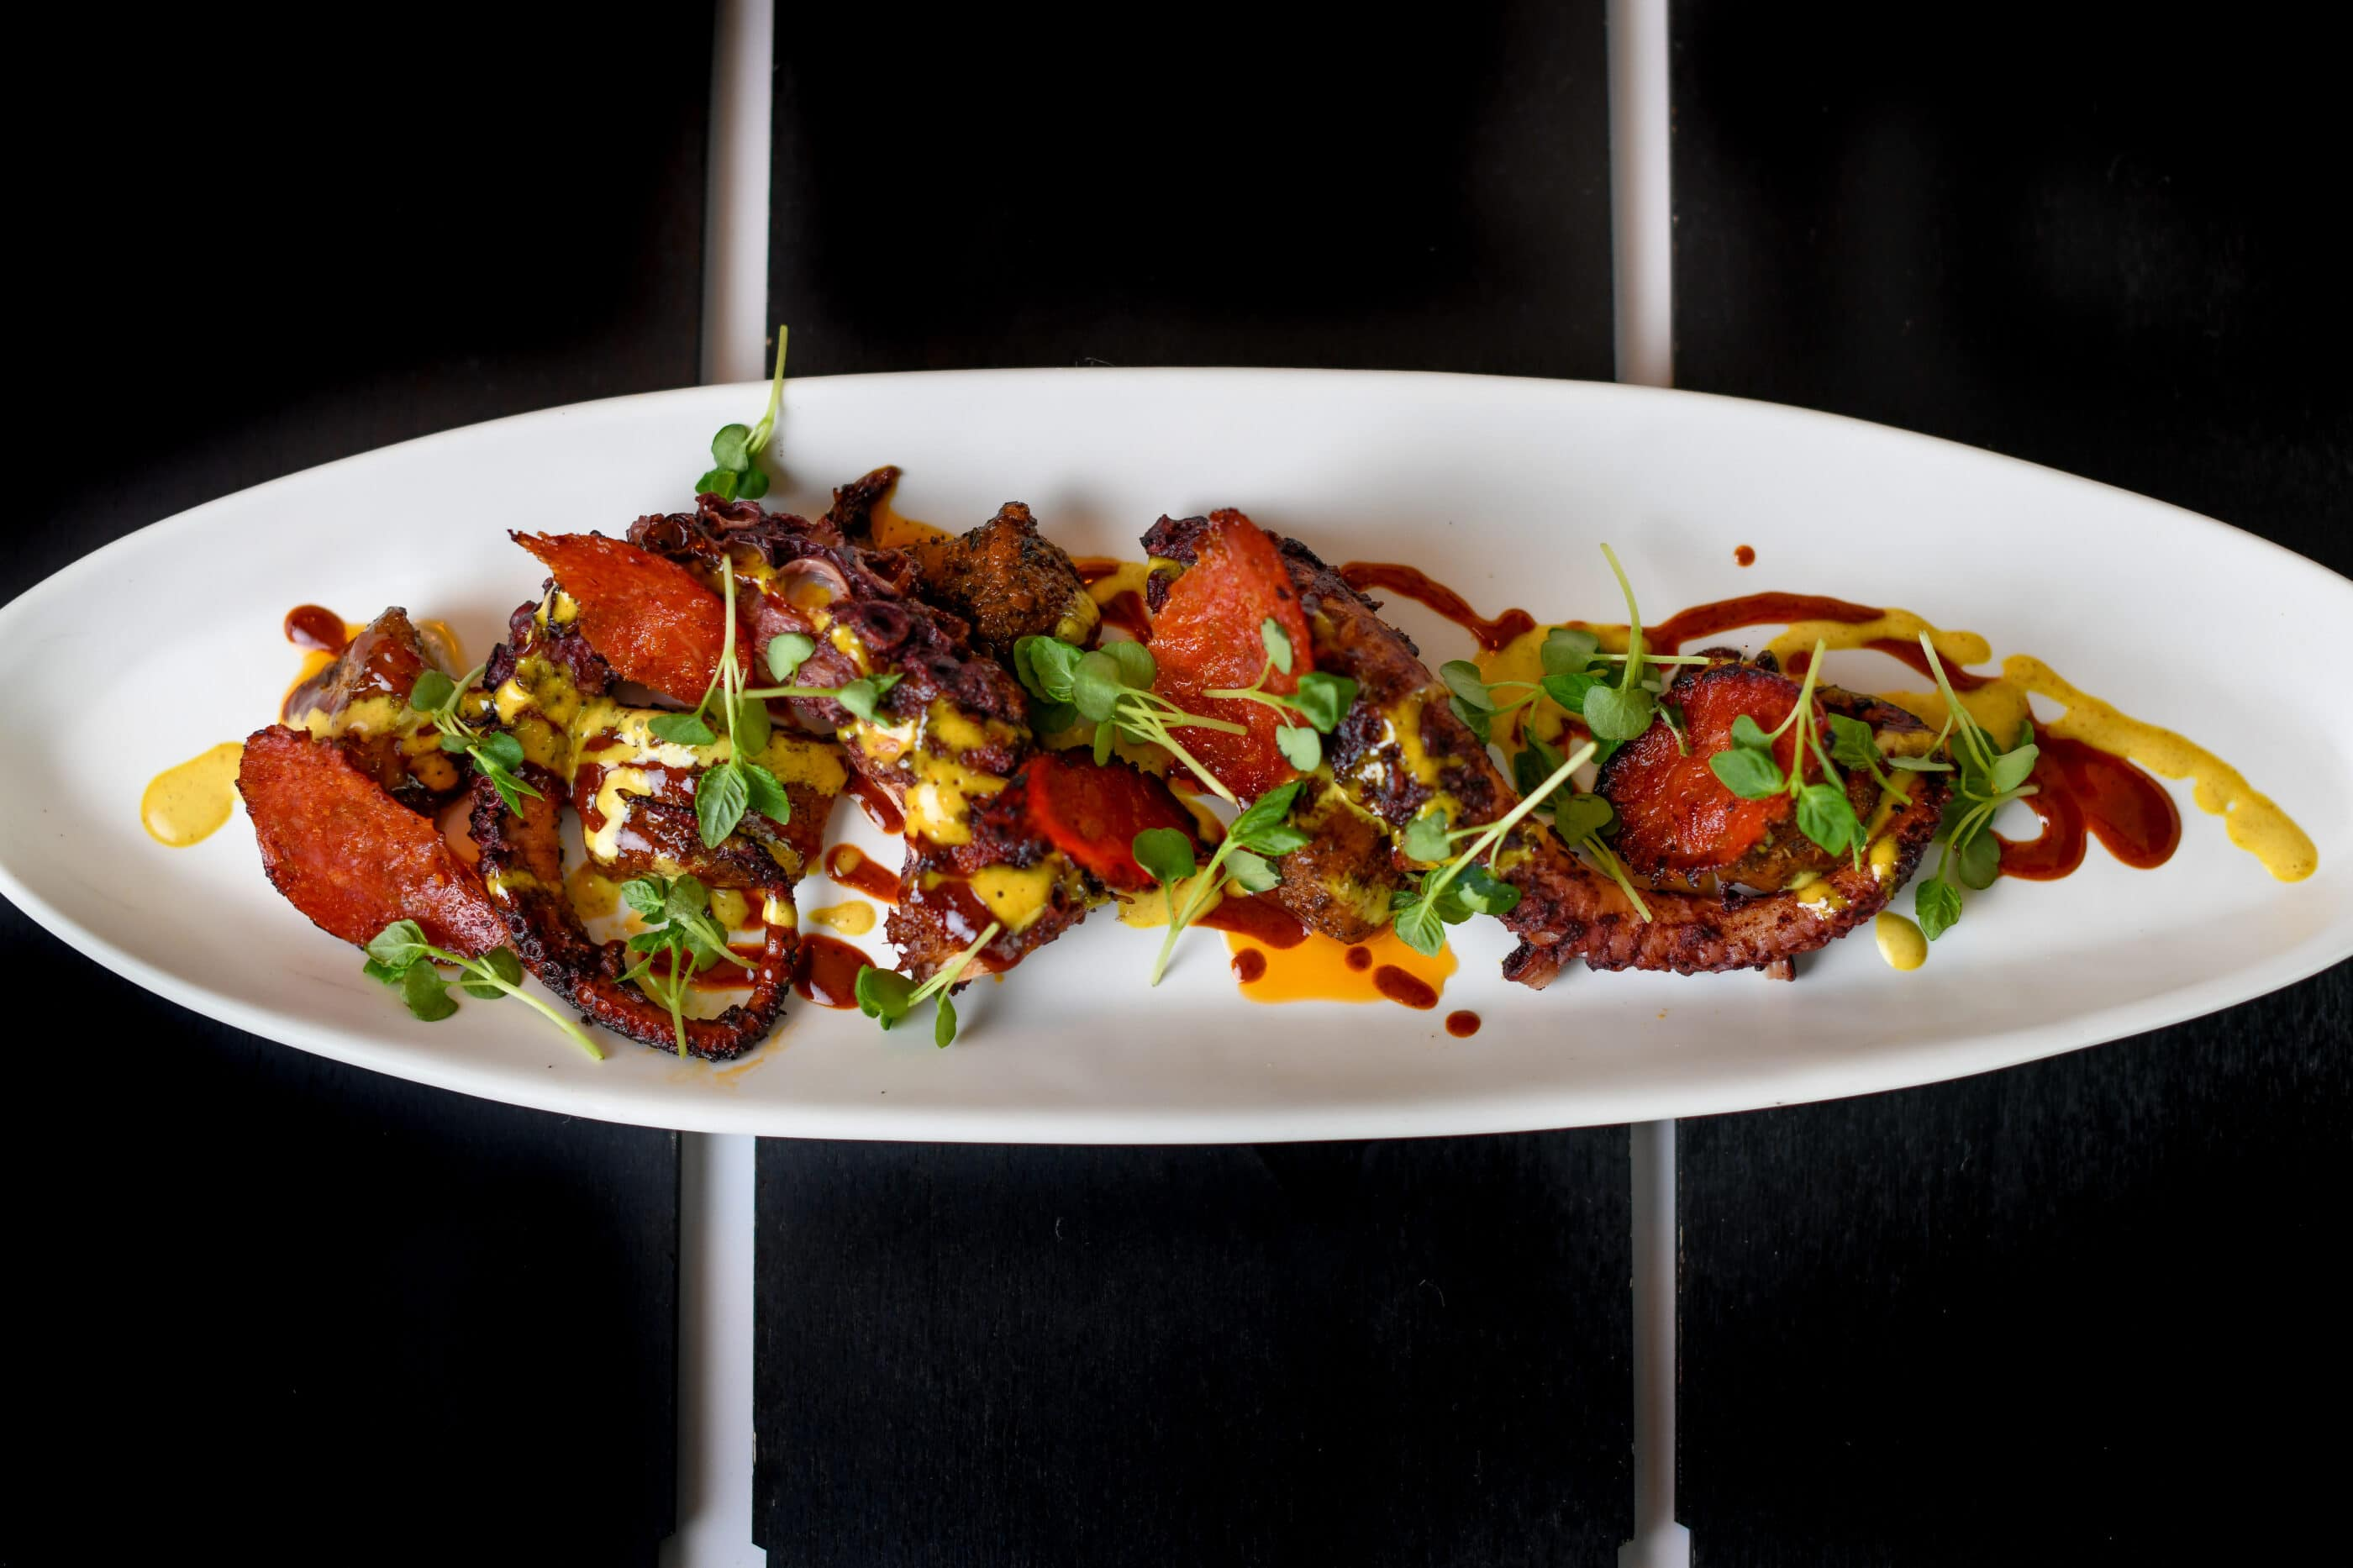 A Grilled Octopus dish on a white plate a The Guild Hotel